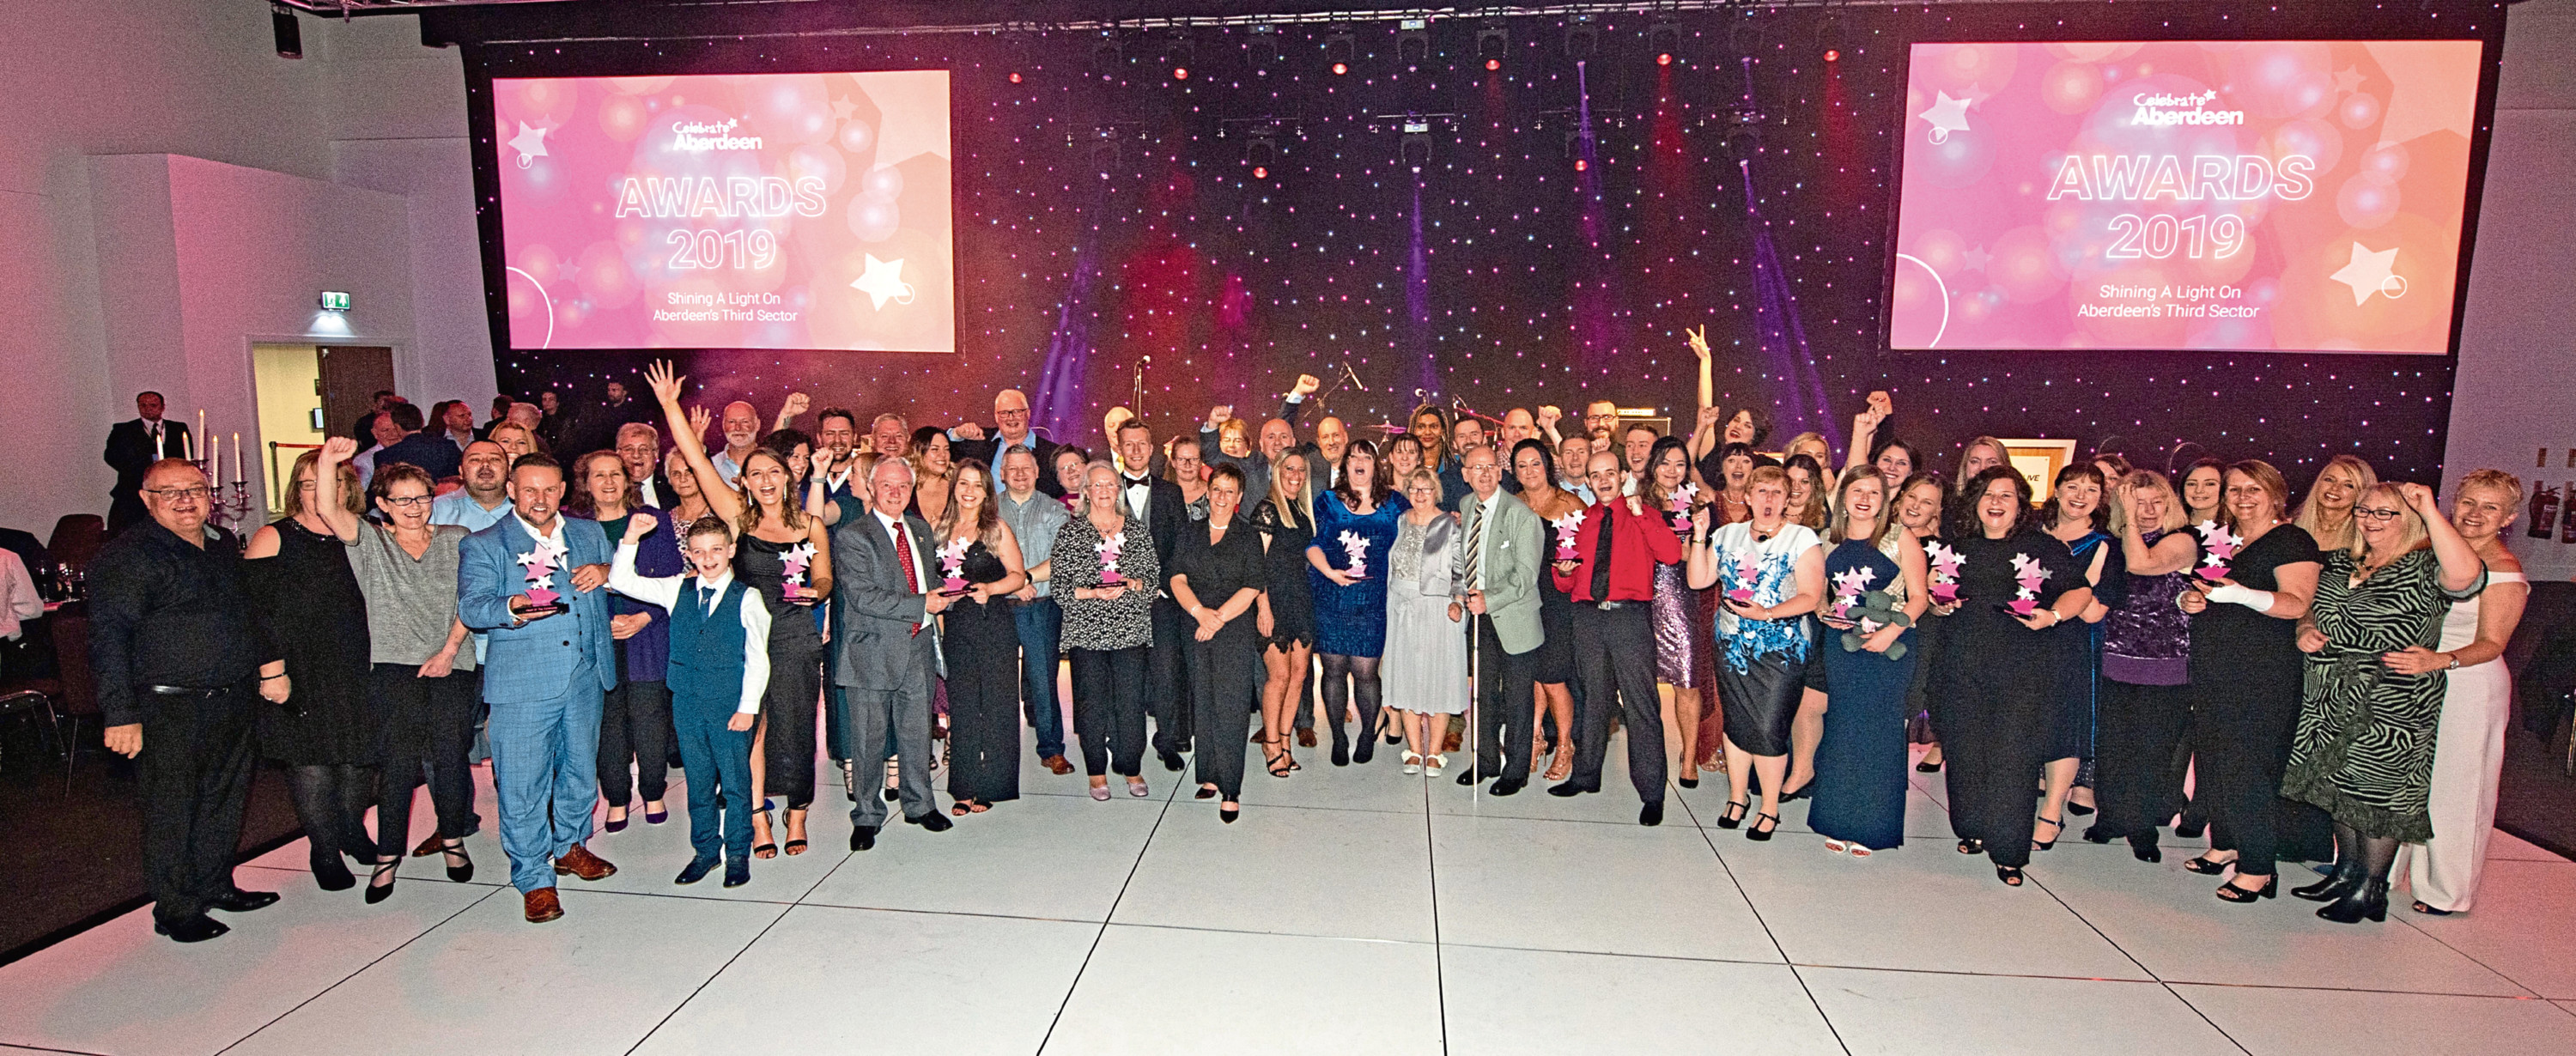 The winners from this year's Celebrate Aberdeen Awards